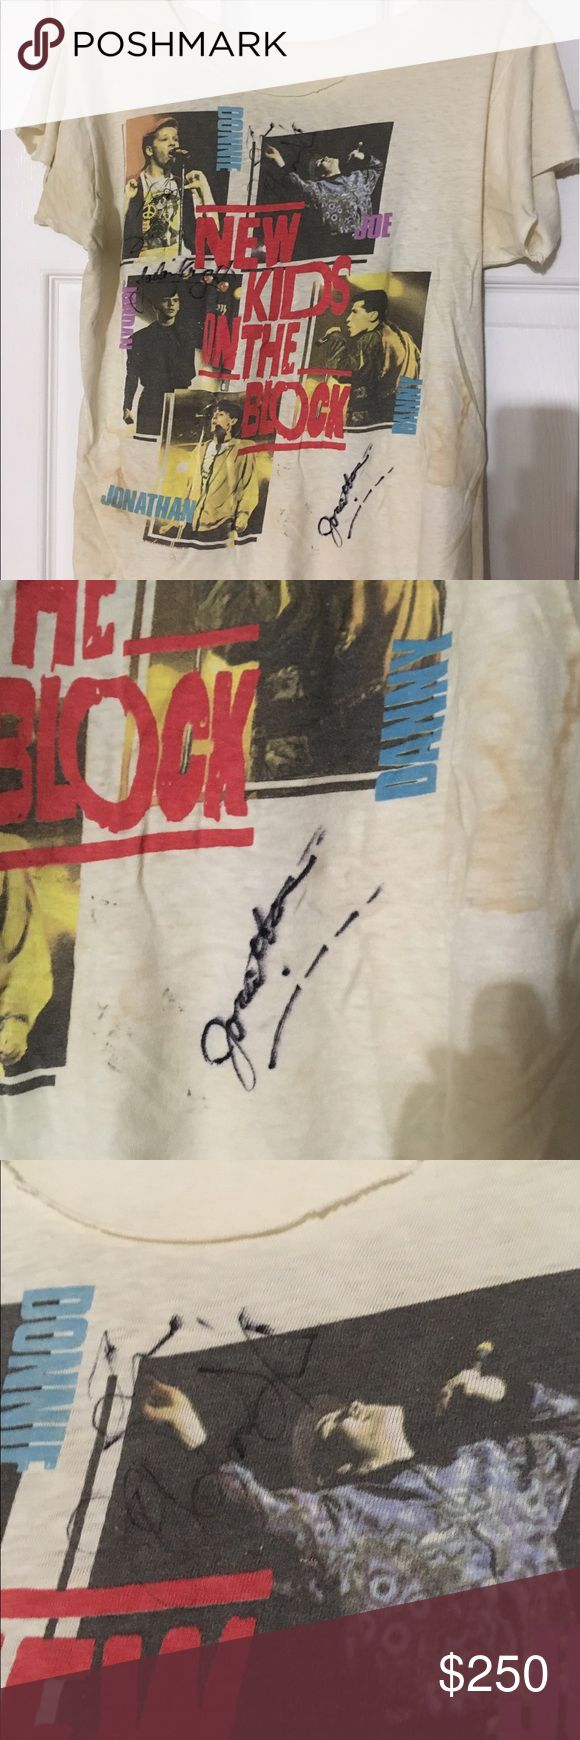 Autographed New Kids on the Block Vintage T-Shirt ORIGINAL NEW KIDS ON THE BLOCK 1989 HANGIN TOUGH WORLD TOUR T-SHIRT SIGNED!  This awesome collector's item has been autographed by Donnie, Joey, Jordan, and John!  Shirt shows signs of age discoloration (see photos). Vintage Tops Tees - Short Sleeve